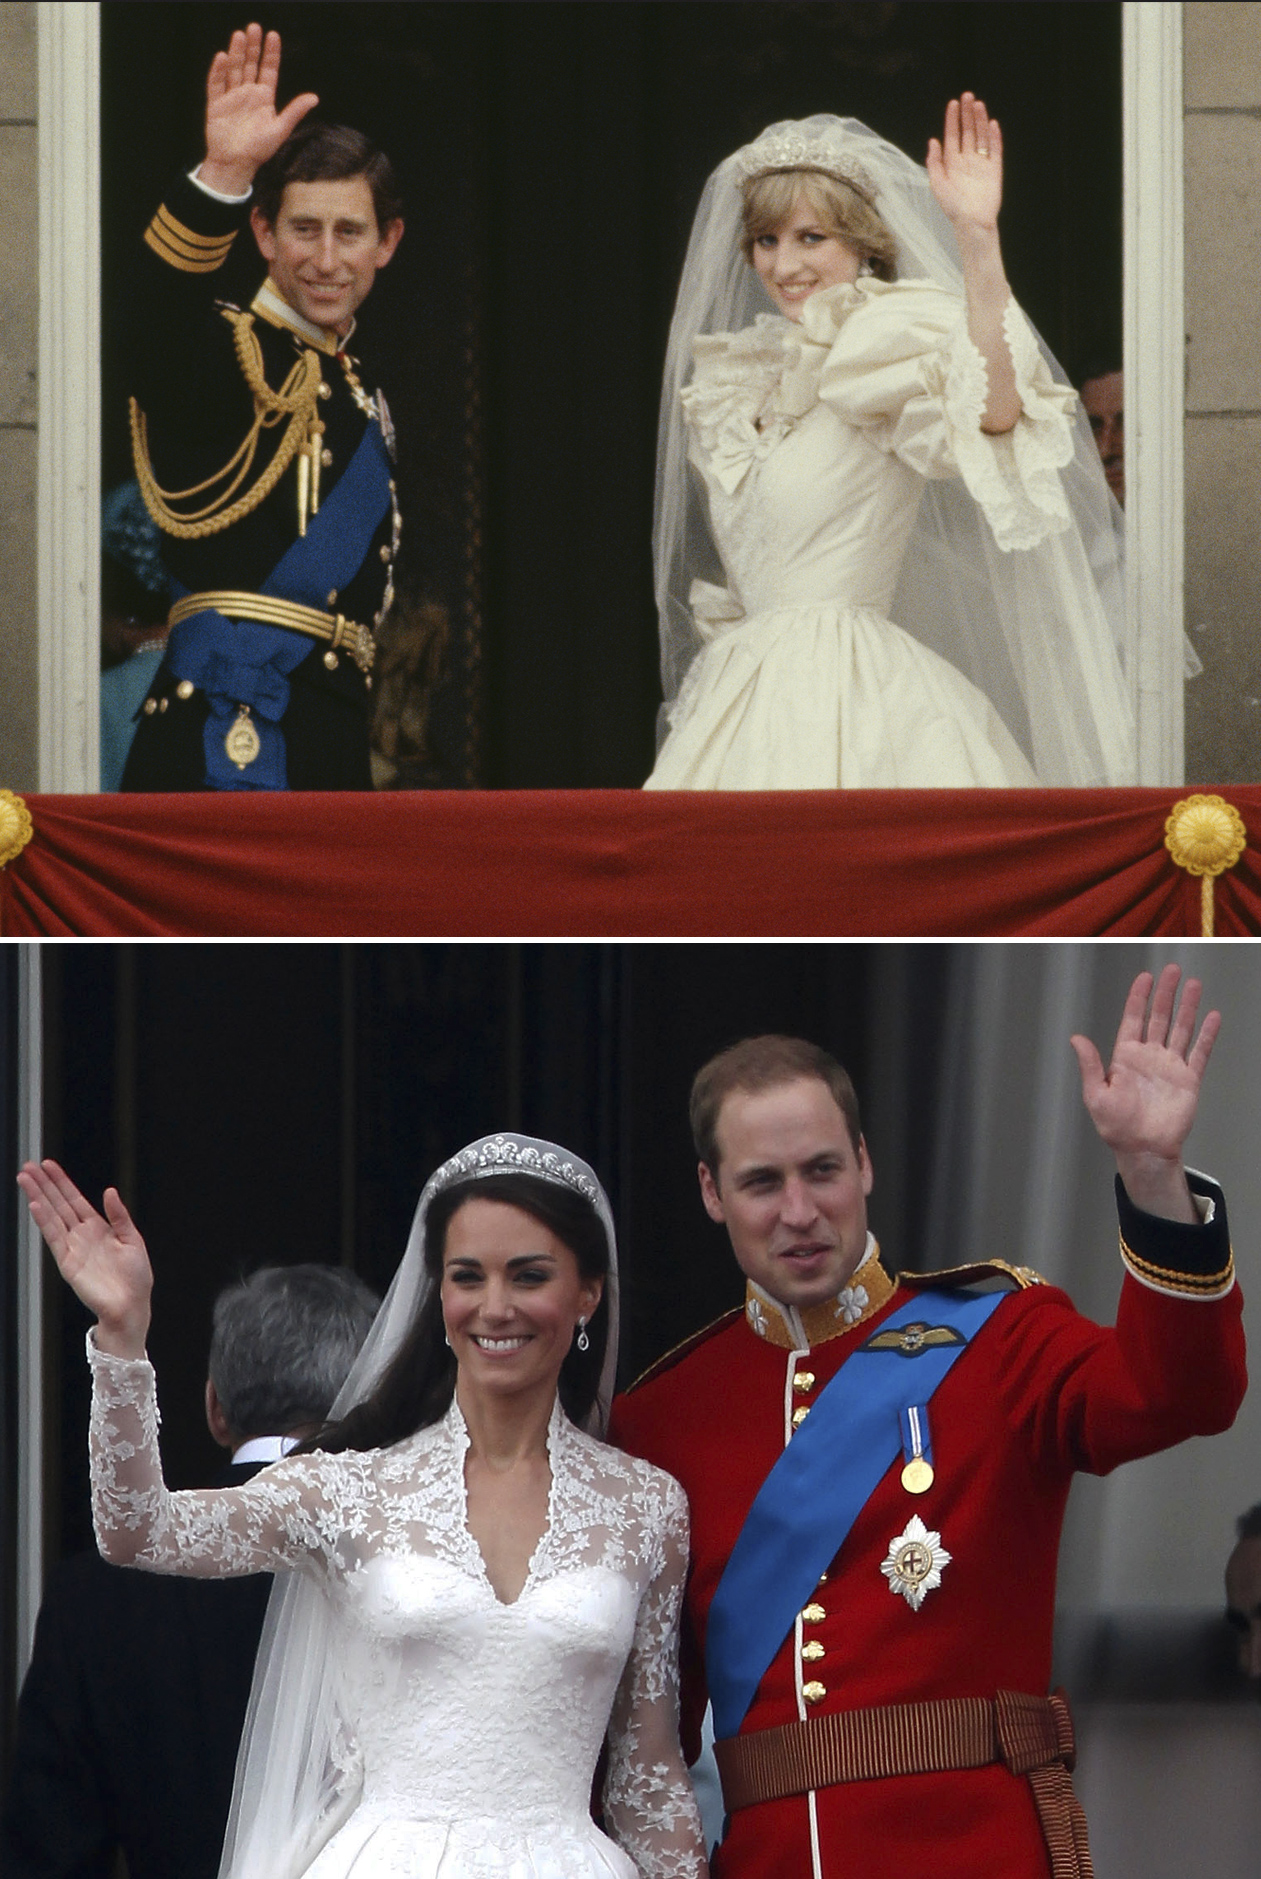 Top: Prince Charles and Princess Diana wave from the balcony of Buckingham Palace after their wedding, London, July 29, 1981. Bottom: Prince William and Catherine, Duchess of Cambridge, wave from the balcony of Buckingham Palace after their wedding, London, April 29, 2011.